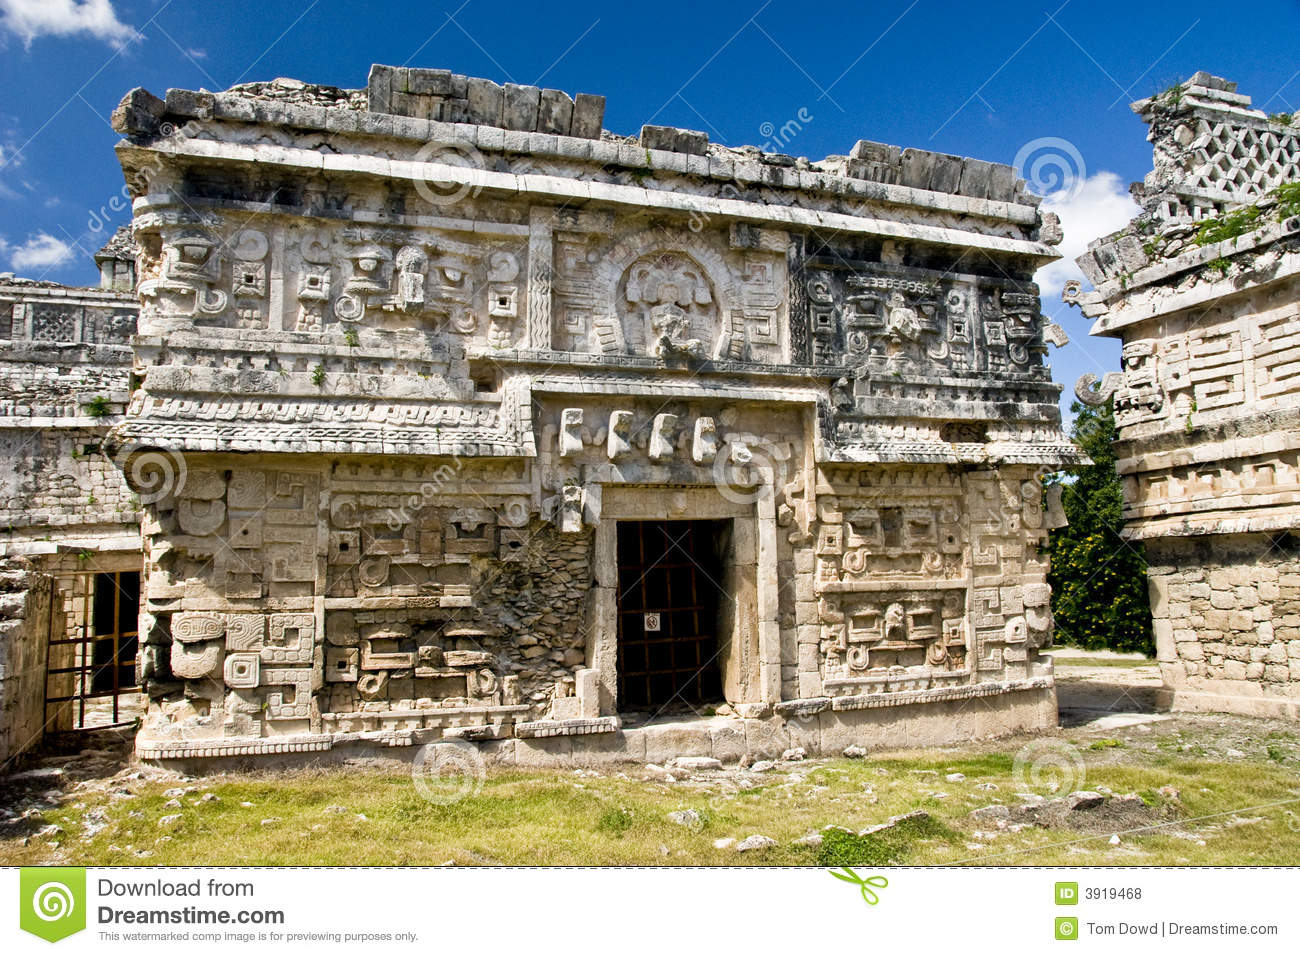 mayan architecture Photo about main mayan temple chichen itza temple in cancun, yucatan area of mexico a prime example of mayan construction image of america, ceremonial, clouds - 5642402.